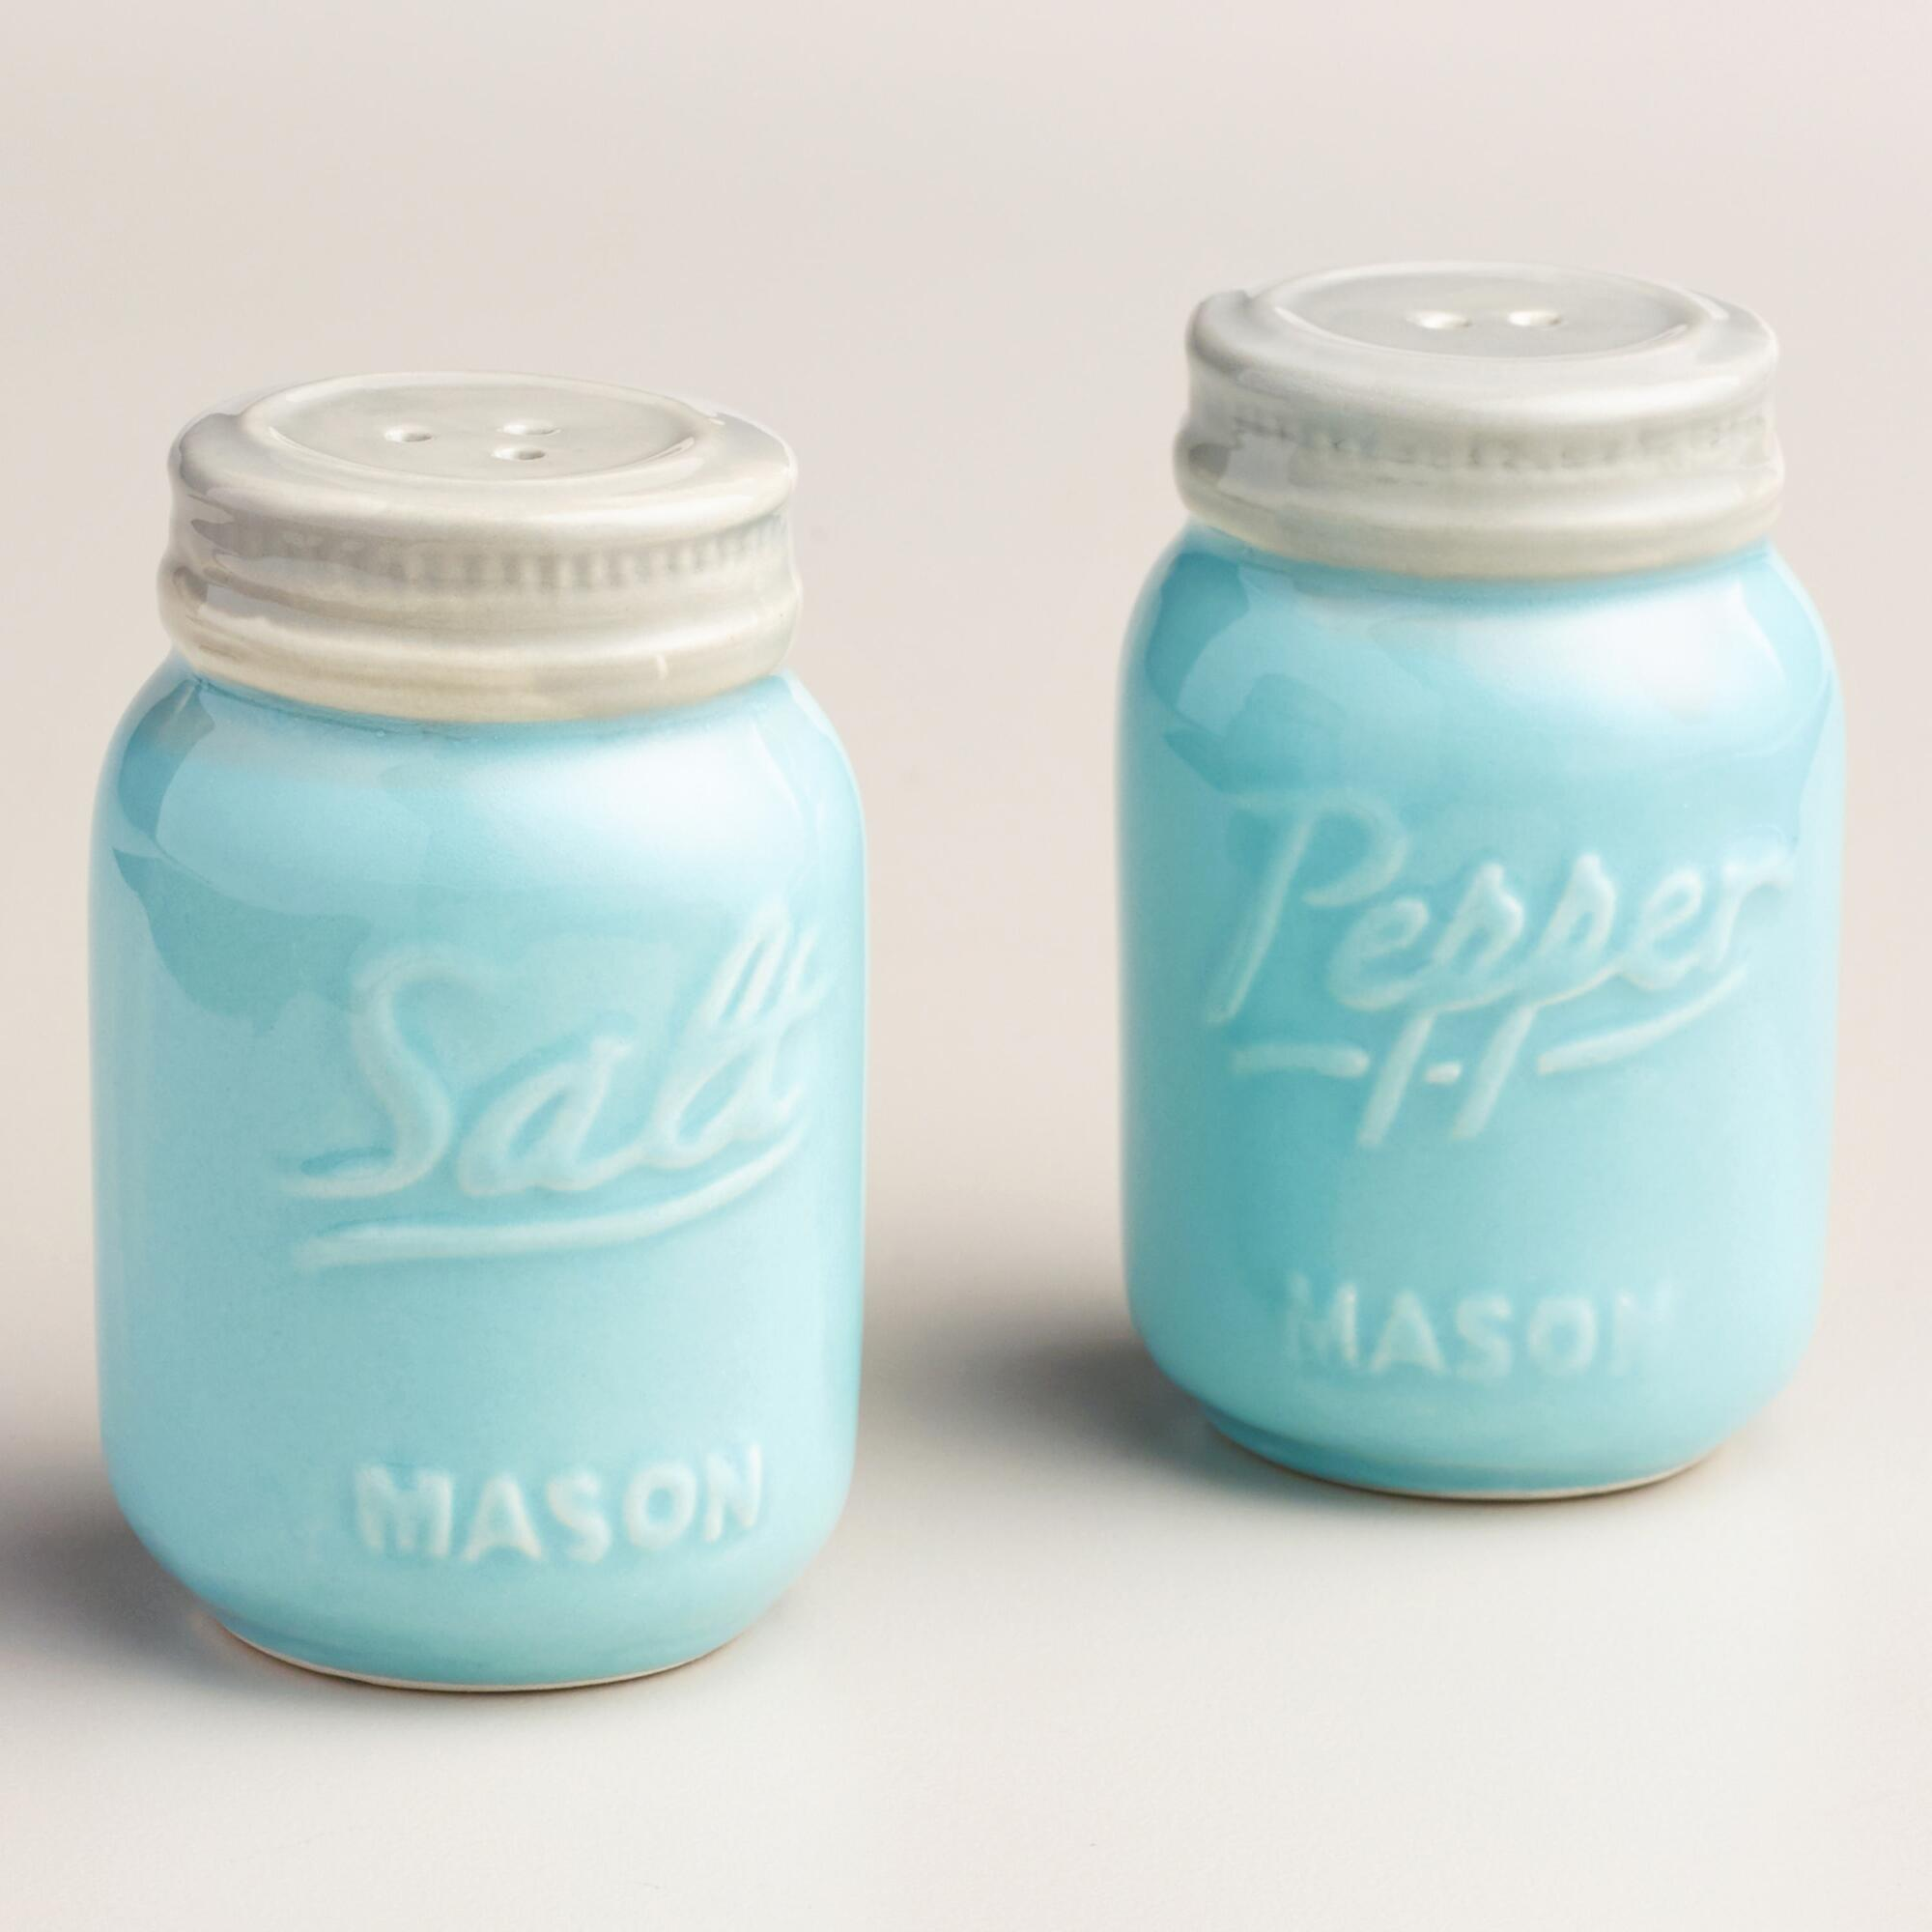 Mason Jar Salt & Pepper Shakers |Ultimate Gift Guide for Mason Jar Lovers | The Everyday Home